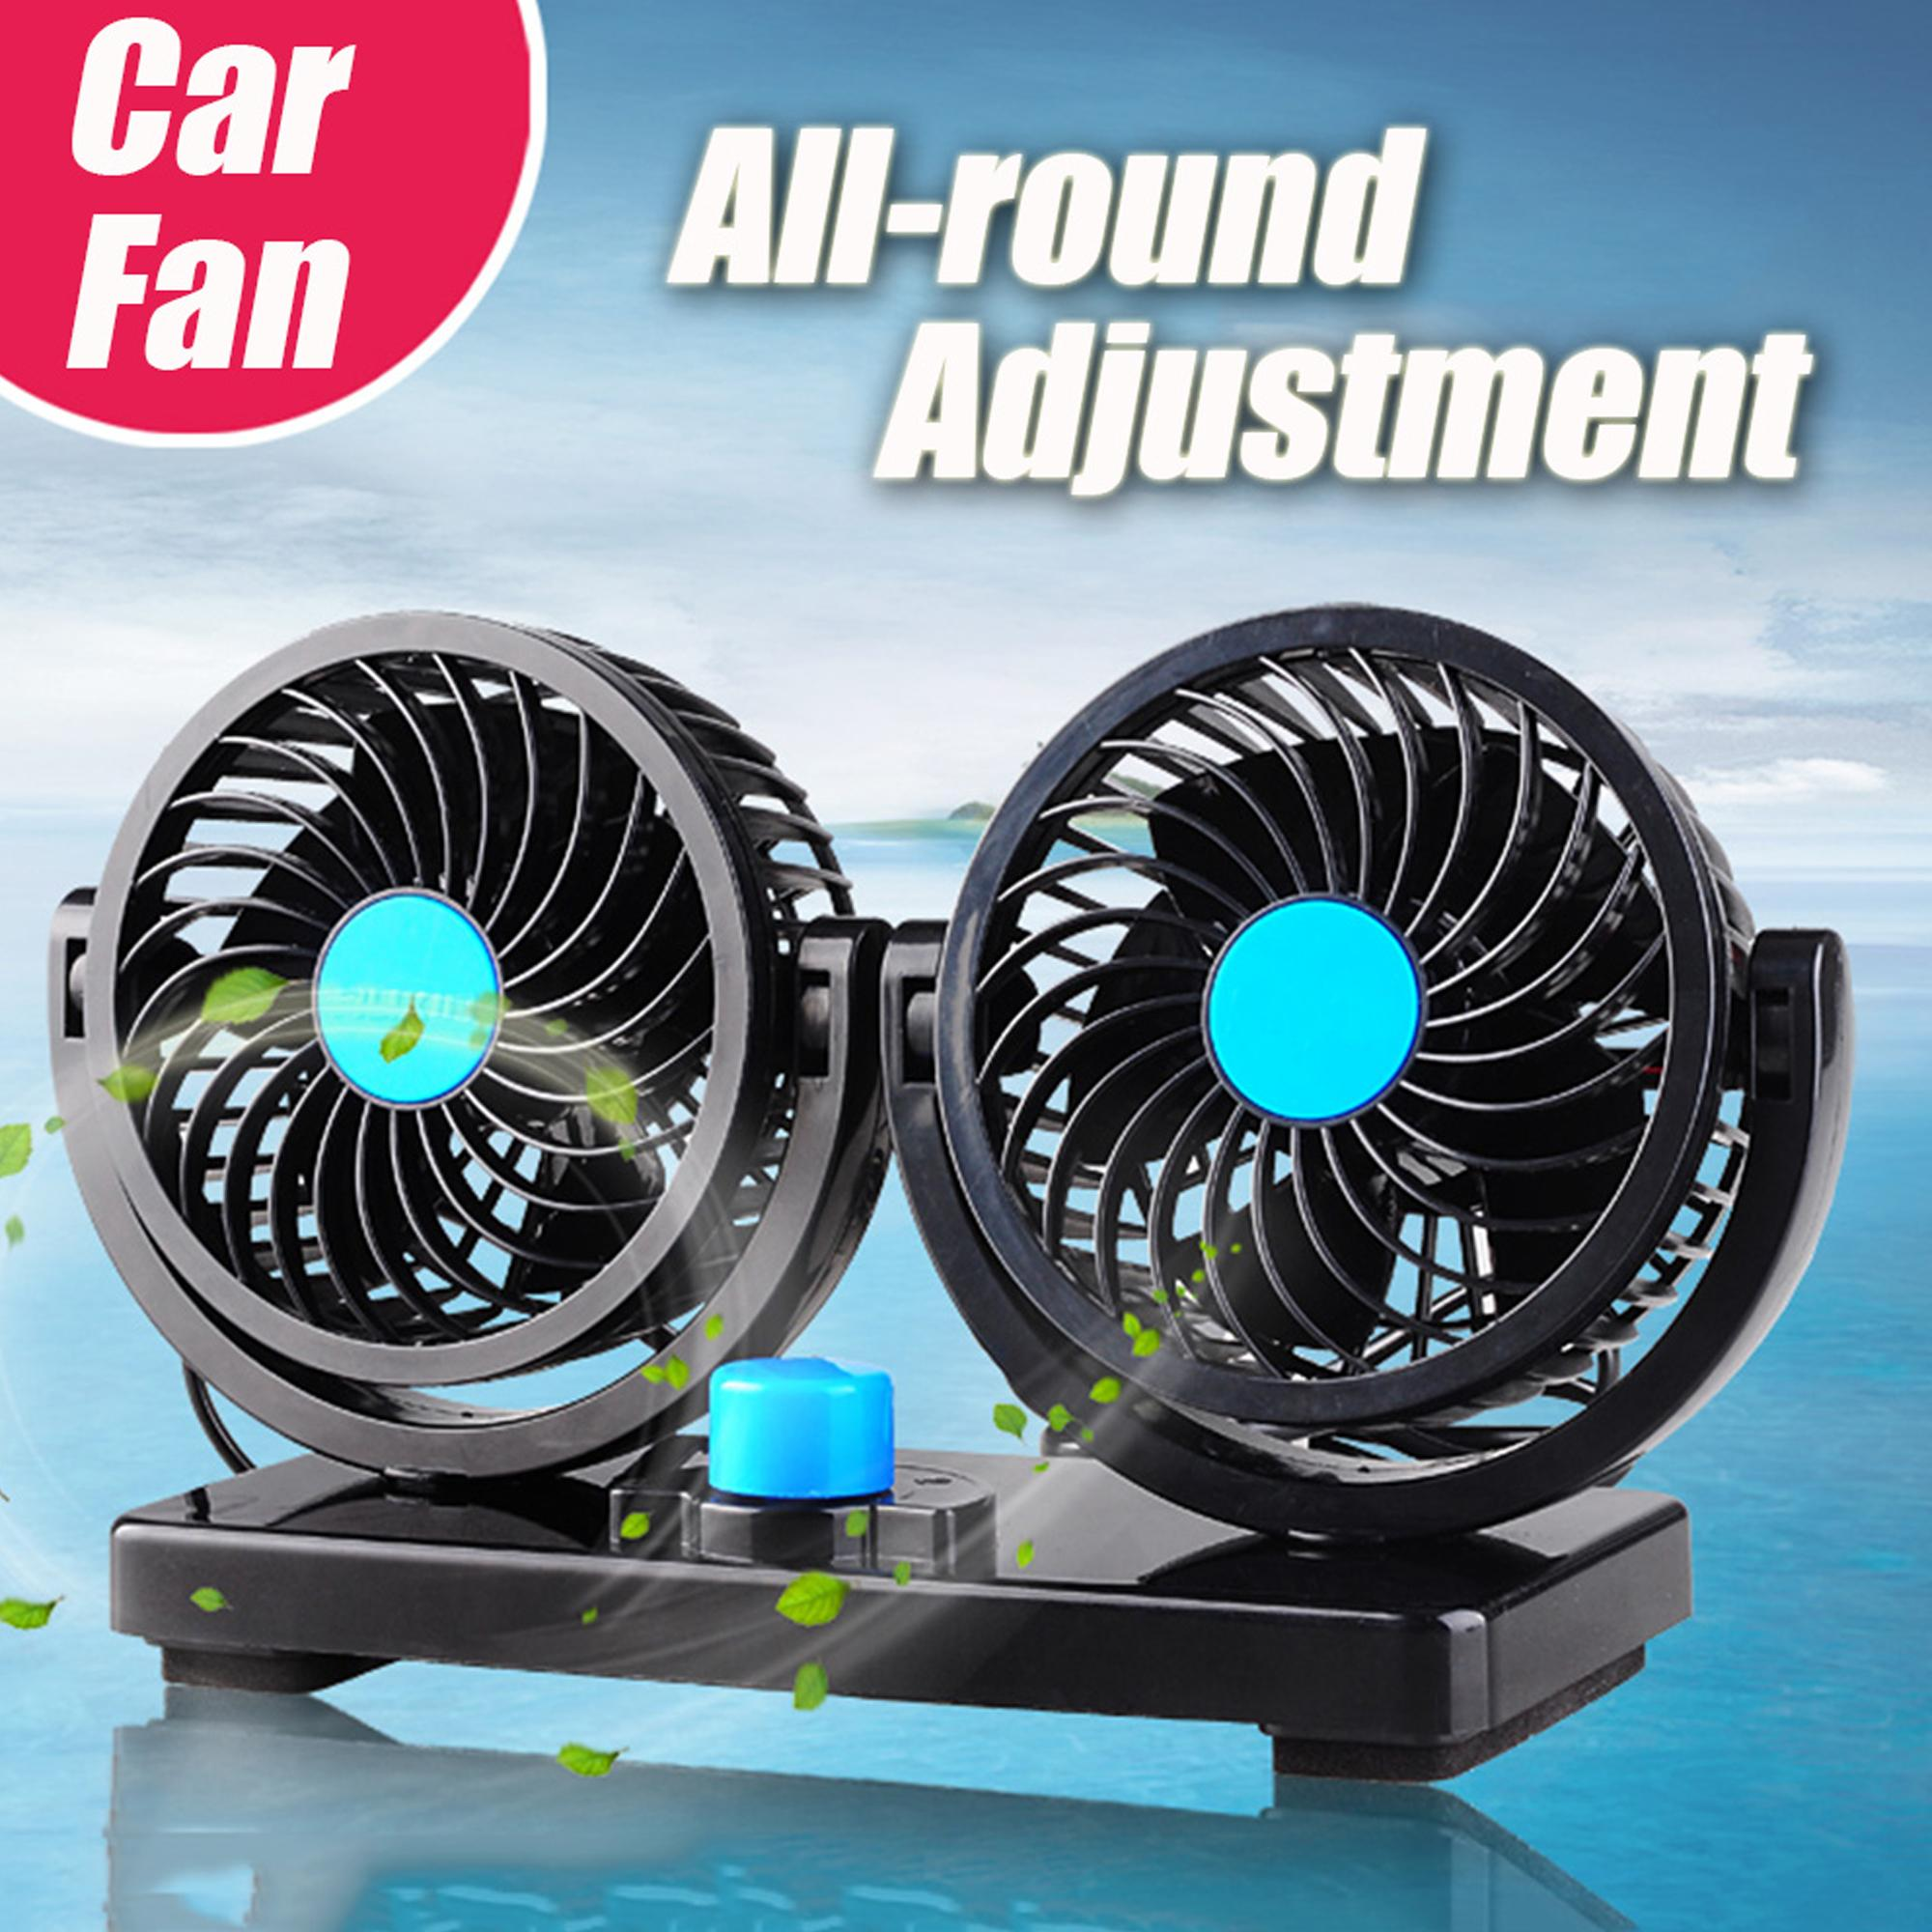 Car Electronics for sale - Electronic Accessories online brands